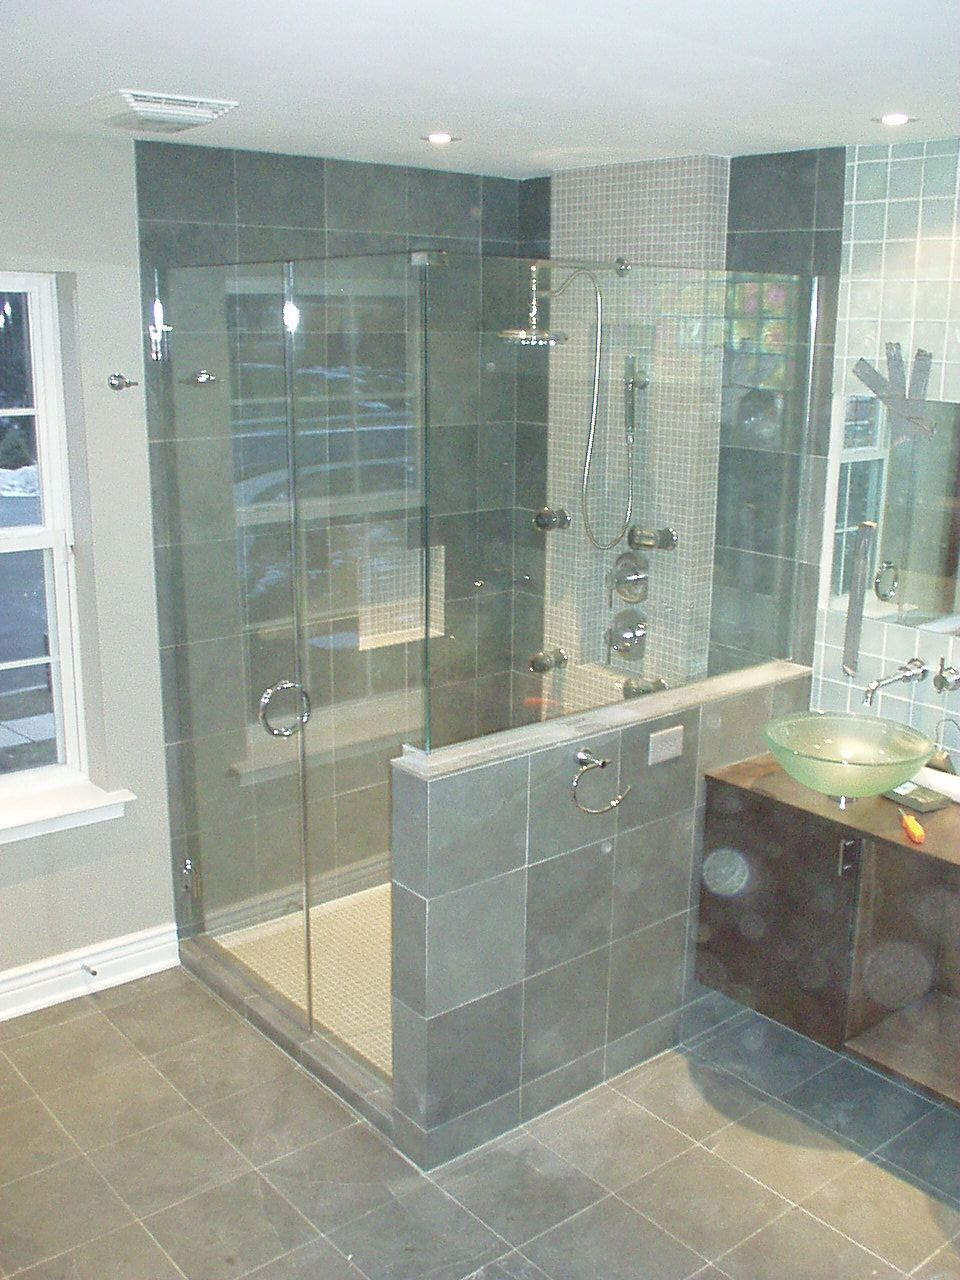 Bathroom olympus digital camera frameless shower doors complete bathroom olympus digital camera frameless shower doors complete the captivating master bathroom interior design eventelaan Images